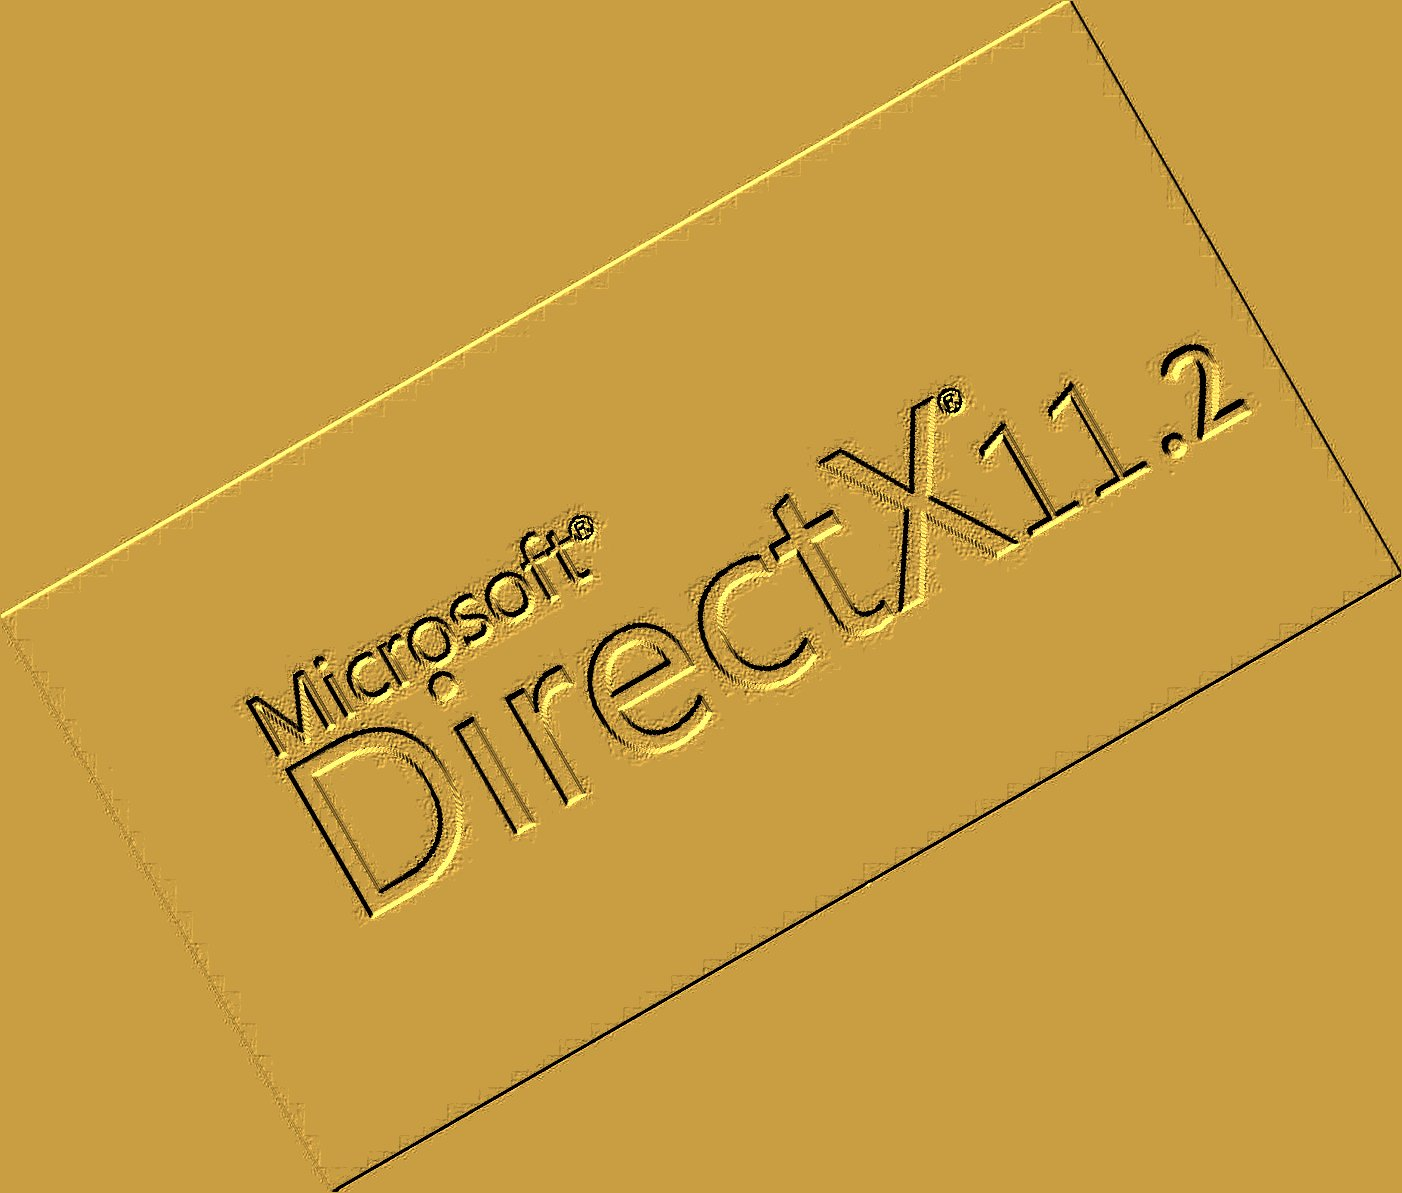 directx 11.2 free download